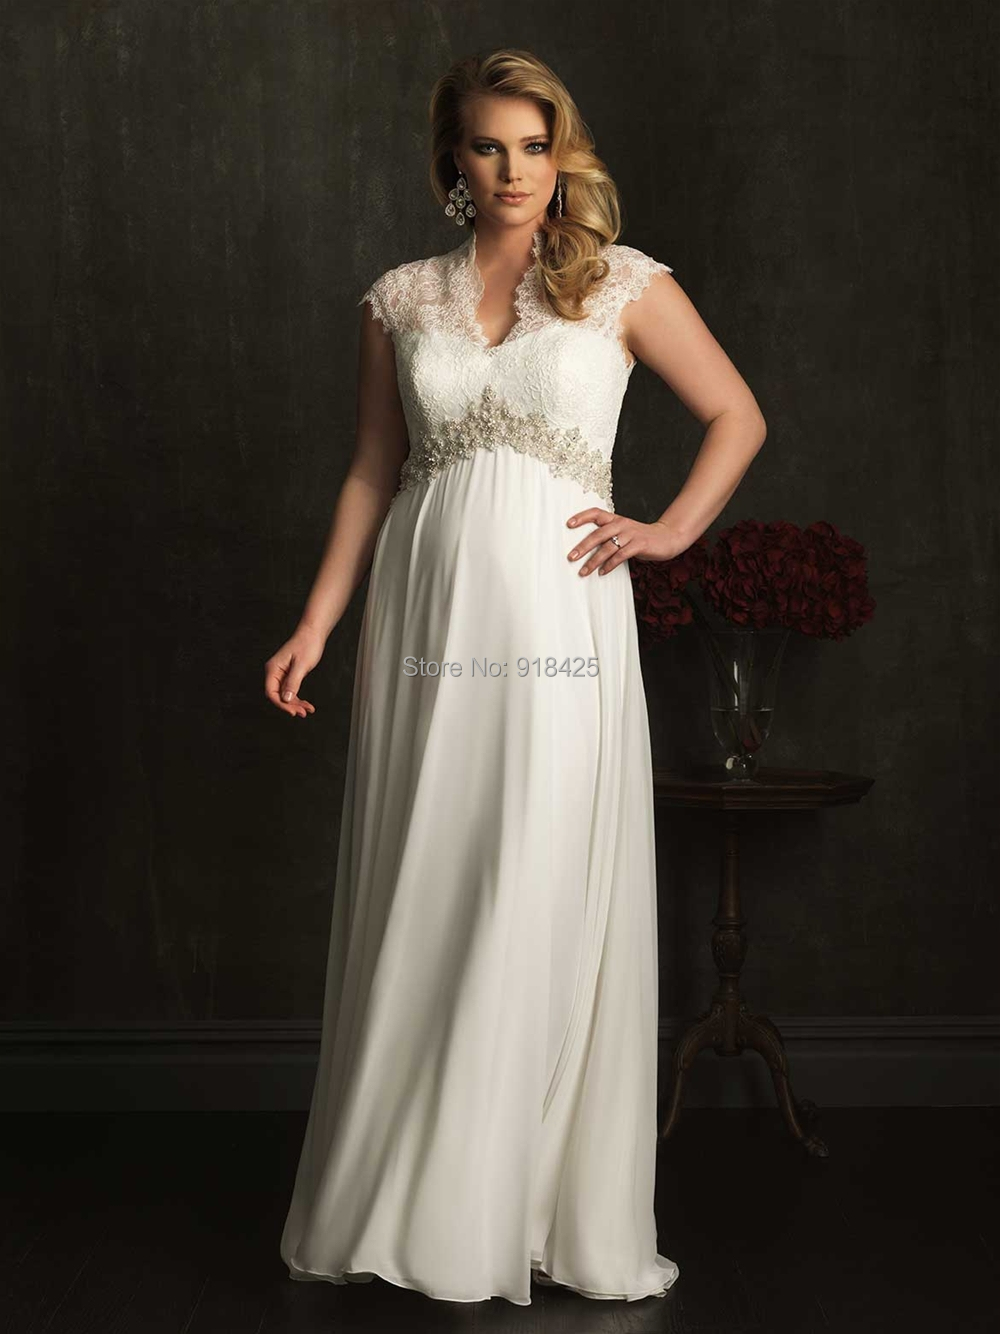 Modest empire waist chiffon plus size wedding dresses lace cap standard size chart ombrellifo Images